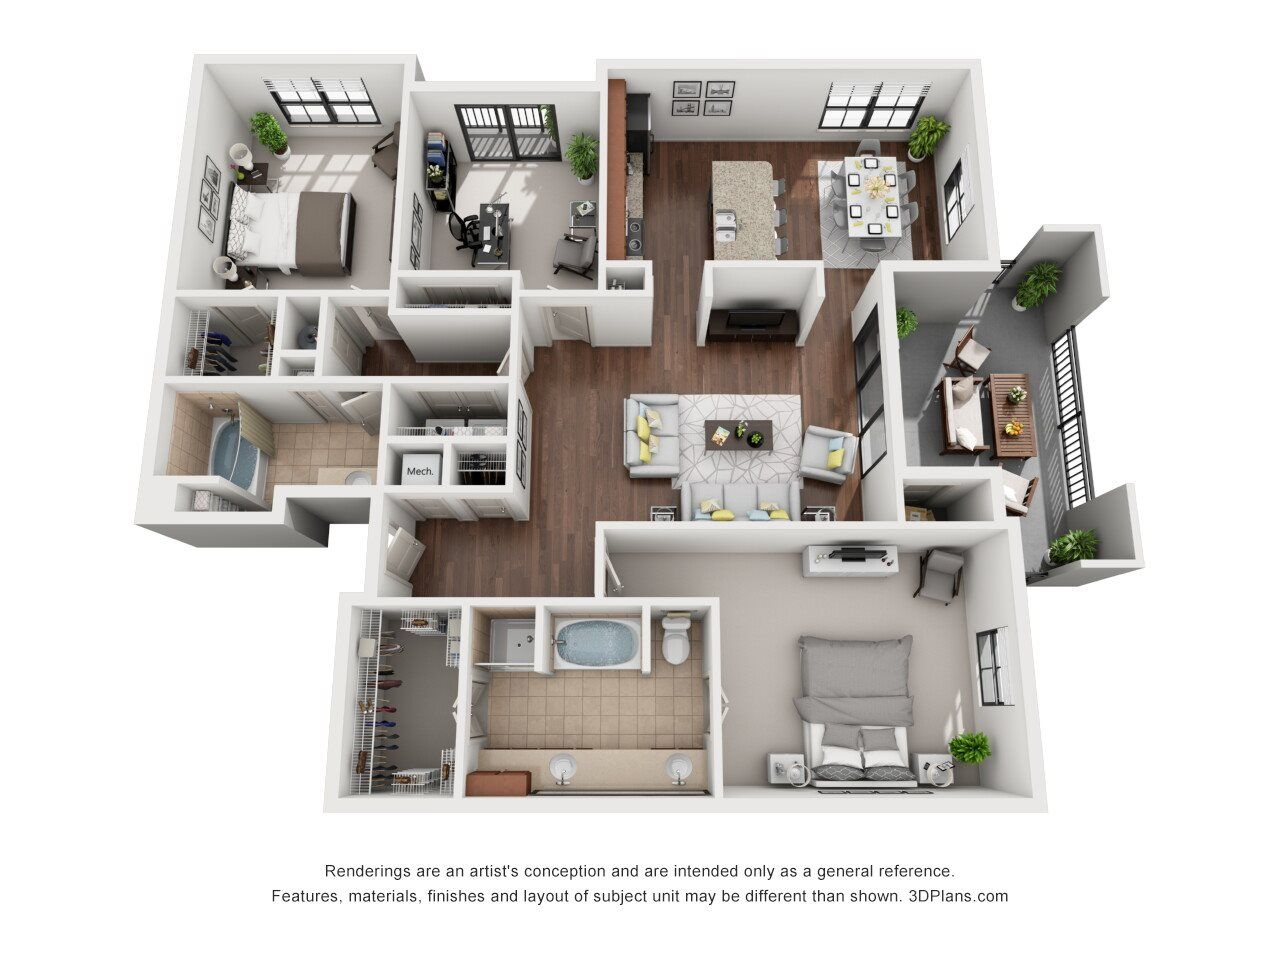 Floor Plans Of Artessa At Quarry Village In San Antonio Tx In 2020 House Layout Plans Sims House Design House Plans